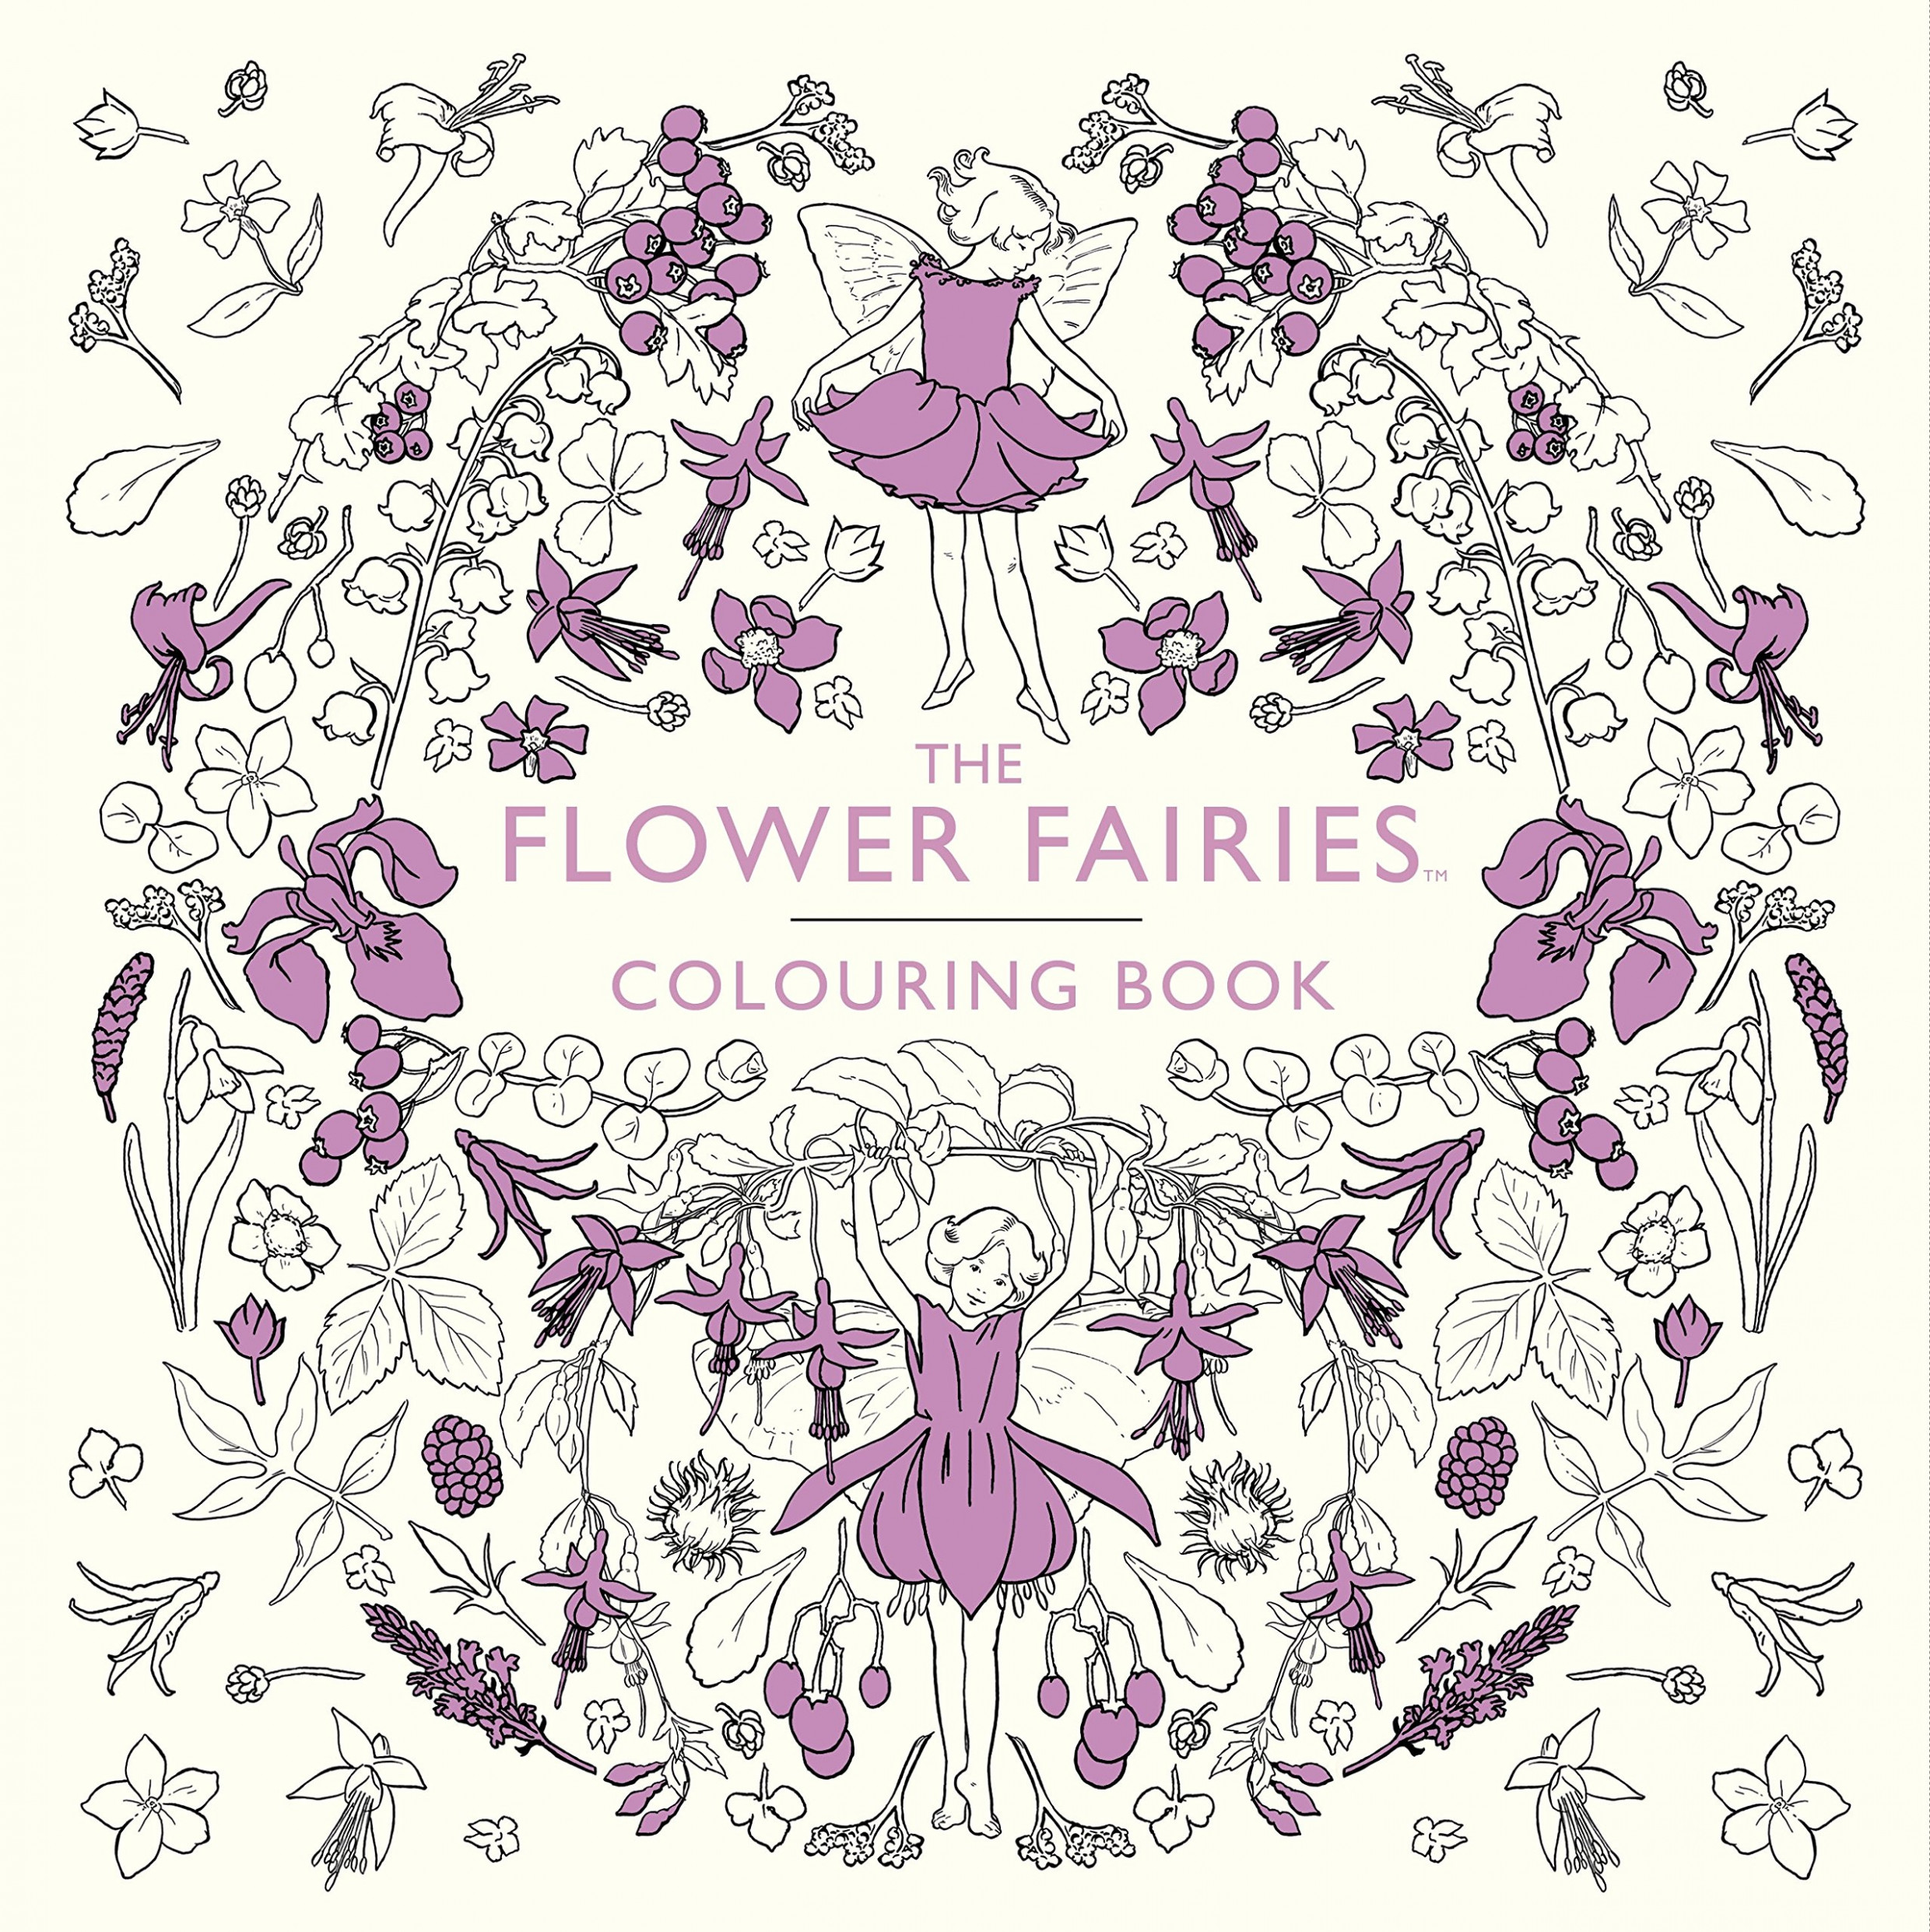 The Flower Fairies Colouring Book (Colouring Books): Amazon.de ...